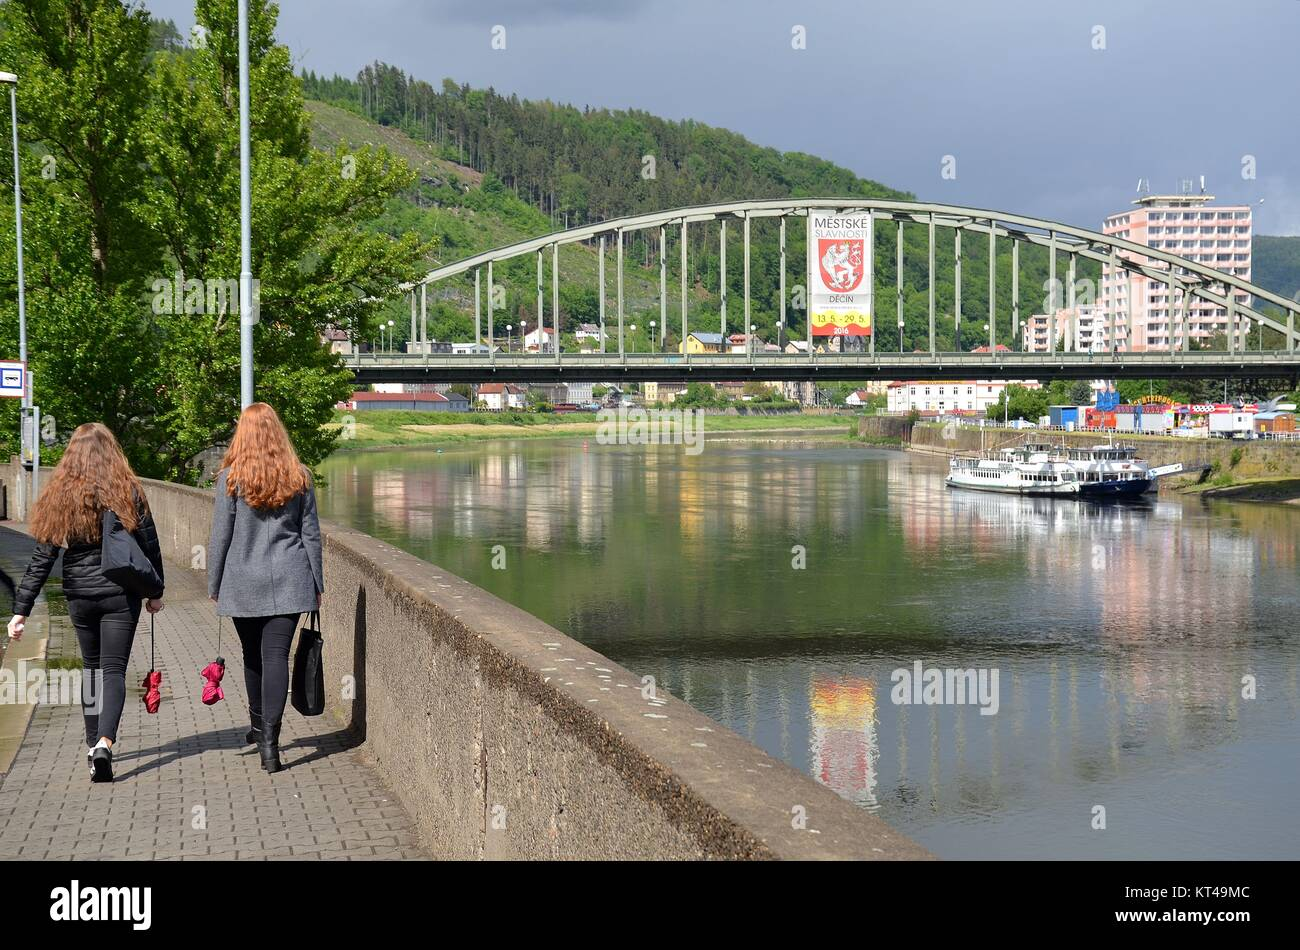 Děčín (Tetschen) at the river Labe (Elbe) in the Czech Republic: women walking by the river - Stock Image